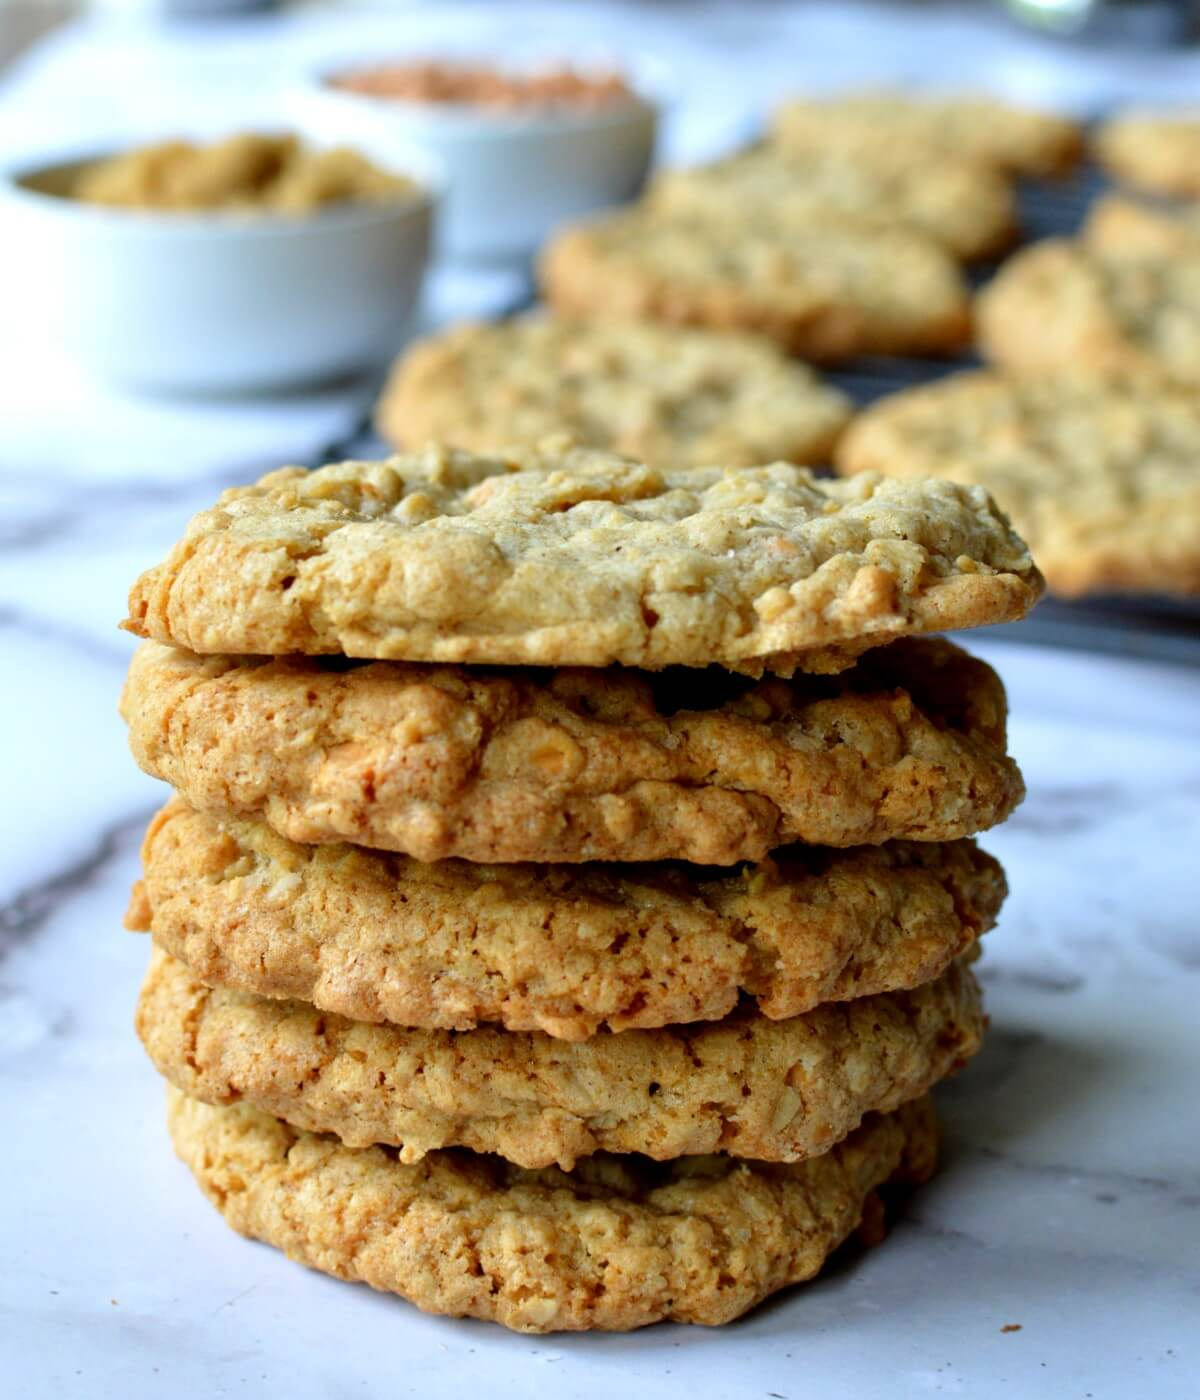 a stack of gluten free oatmeal scotchies